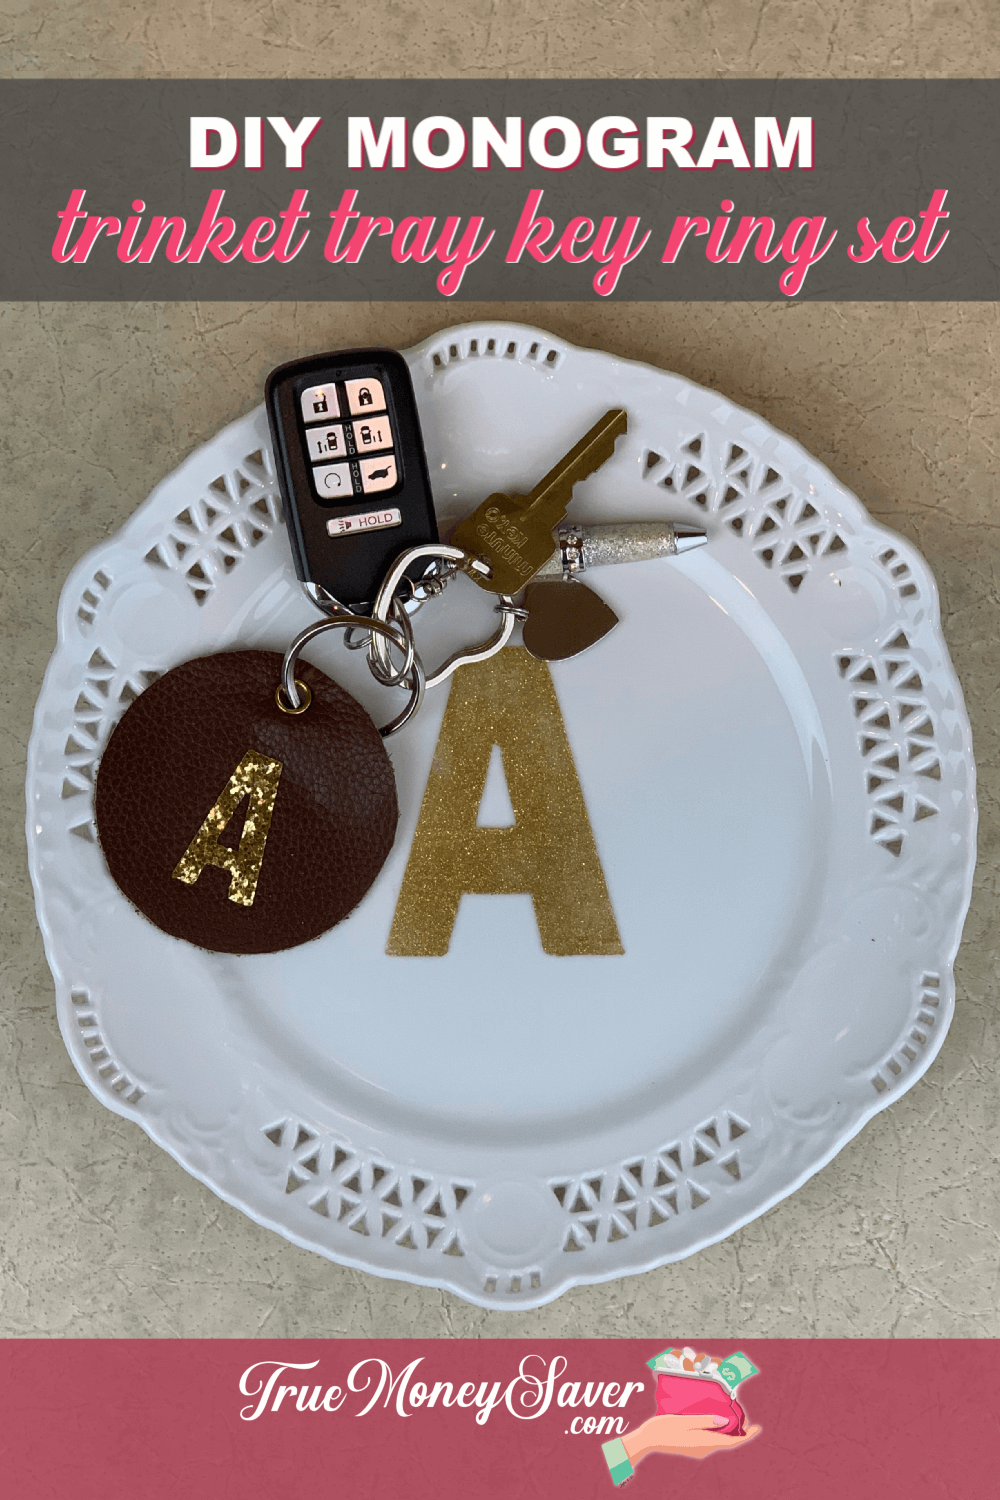 You\'ll have to check out these DIY trinket tray gift ideas to make for gifts this year! Make a simple DIY ring dish or an entryway key dish! Either way, this monogrammed DIY key dish or jewelry plate ring dish is sure to please your friends and family! Get started today!